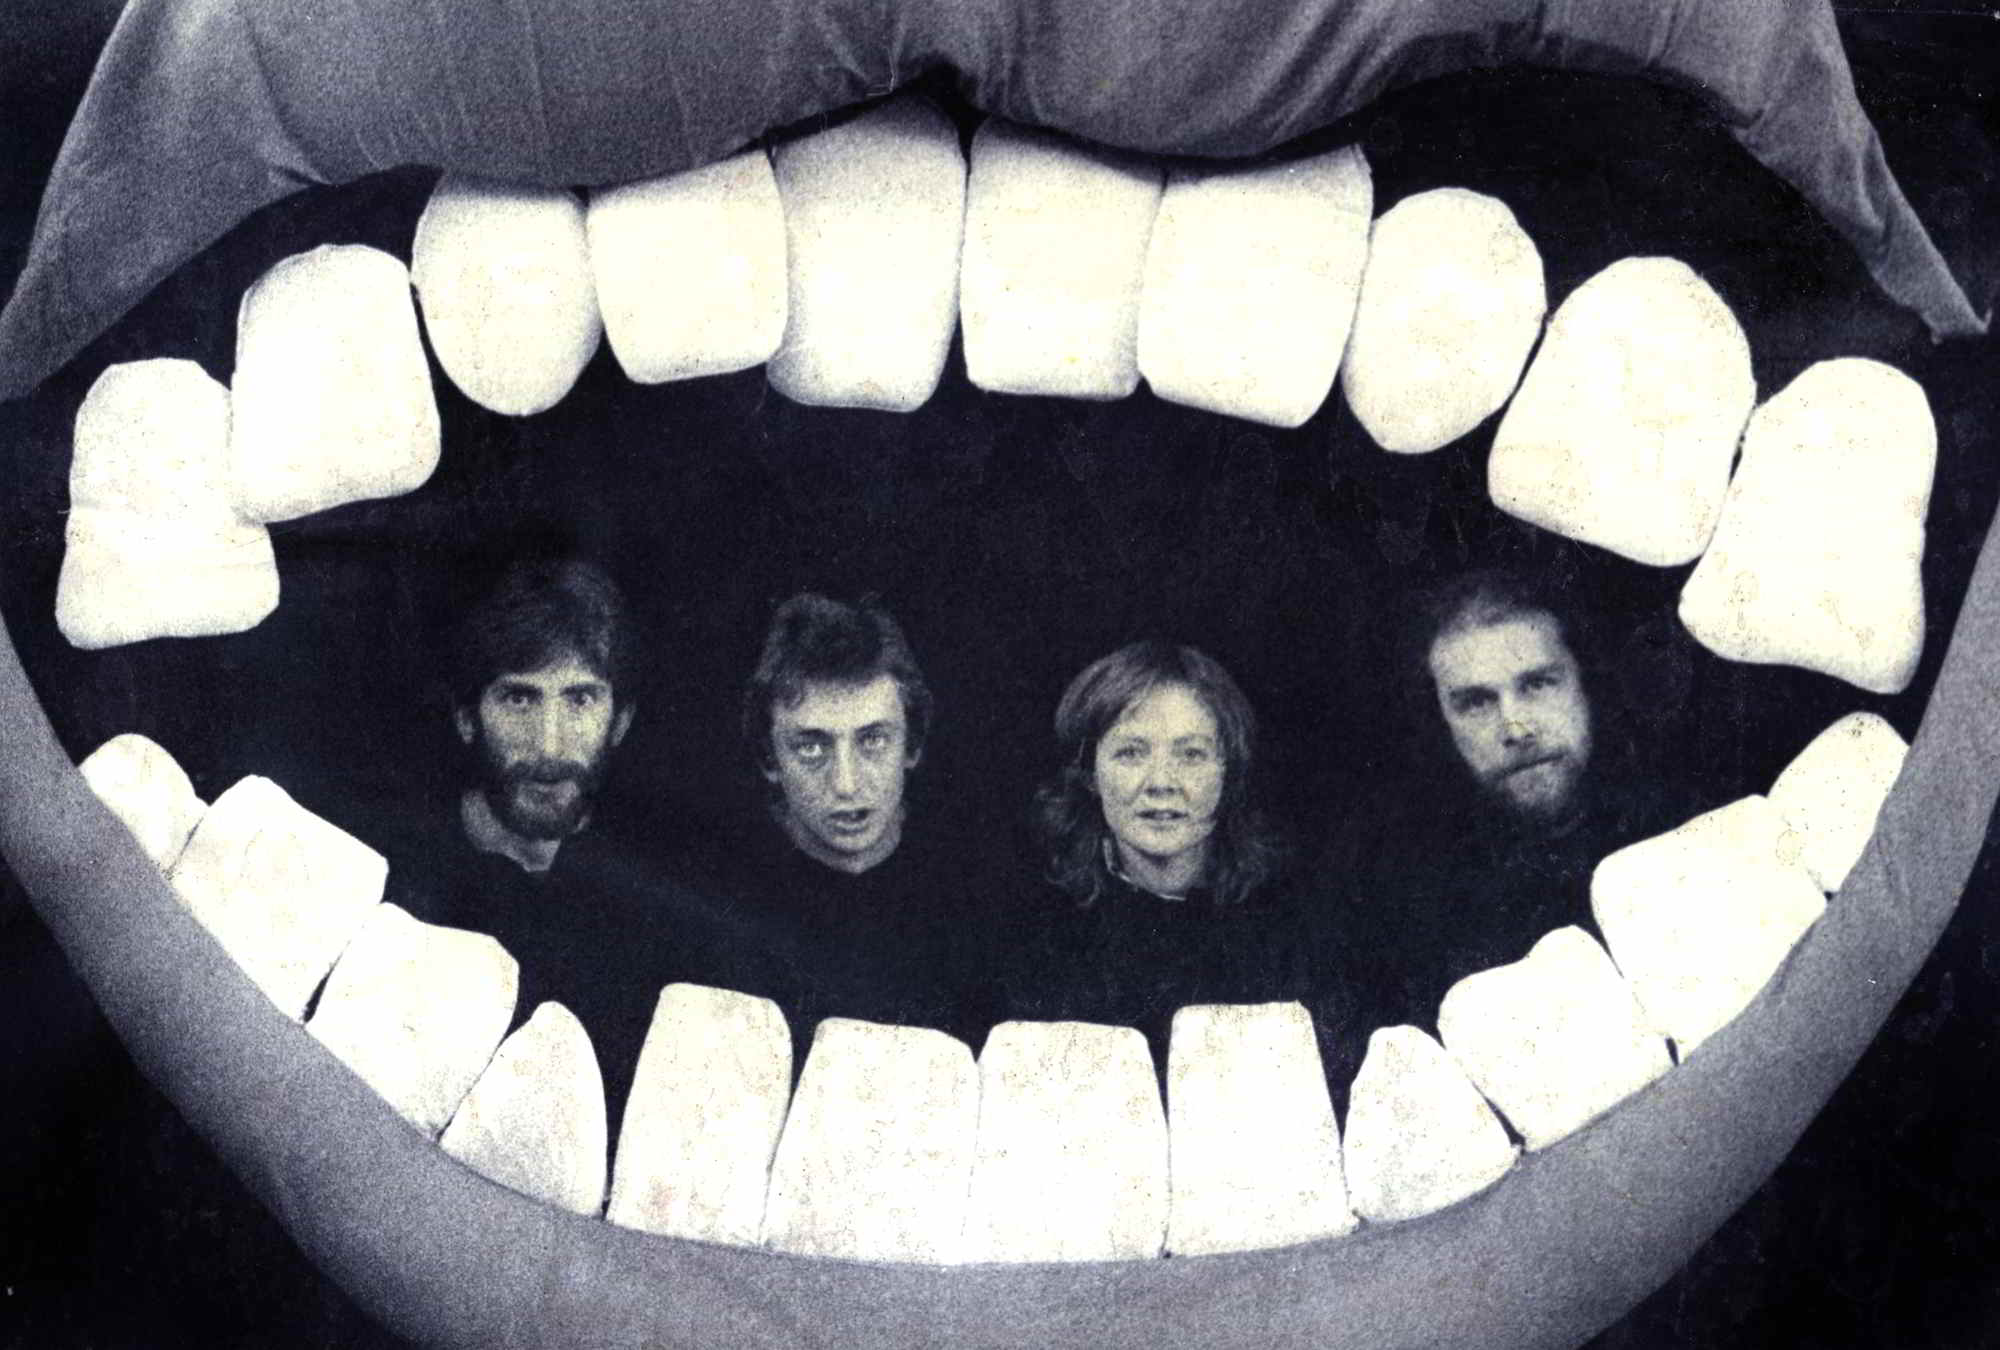 portrait of four people's heads inside the mouth